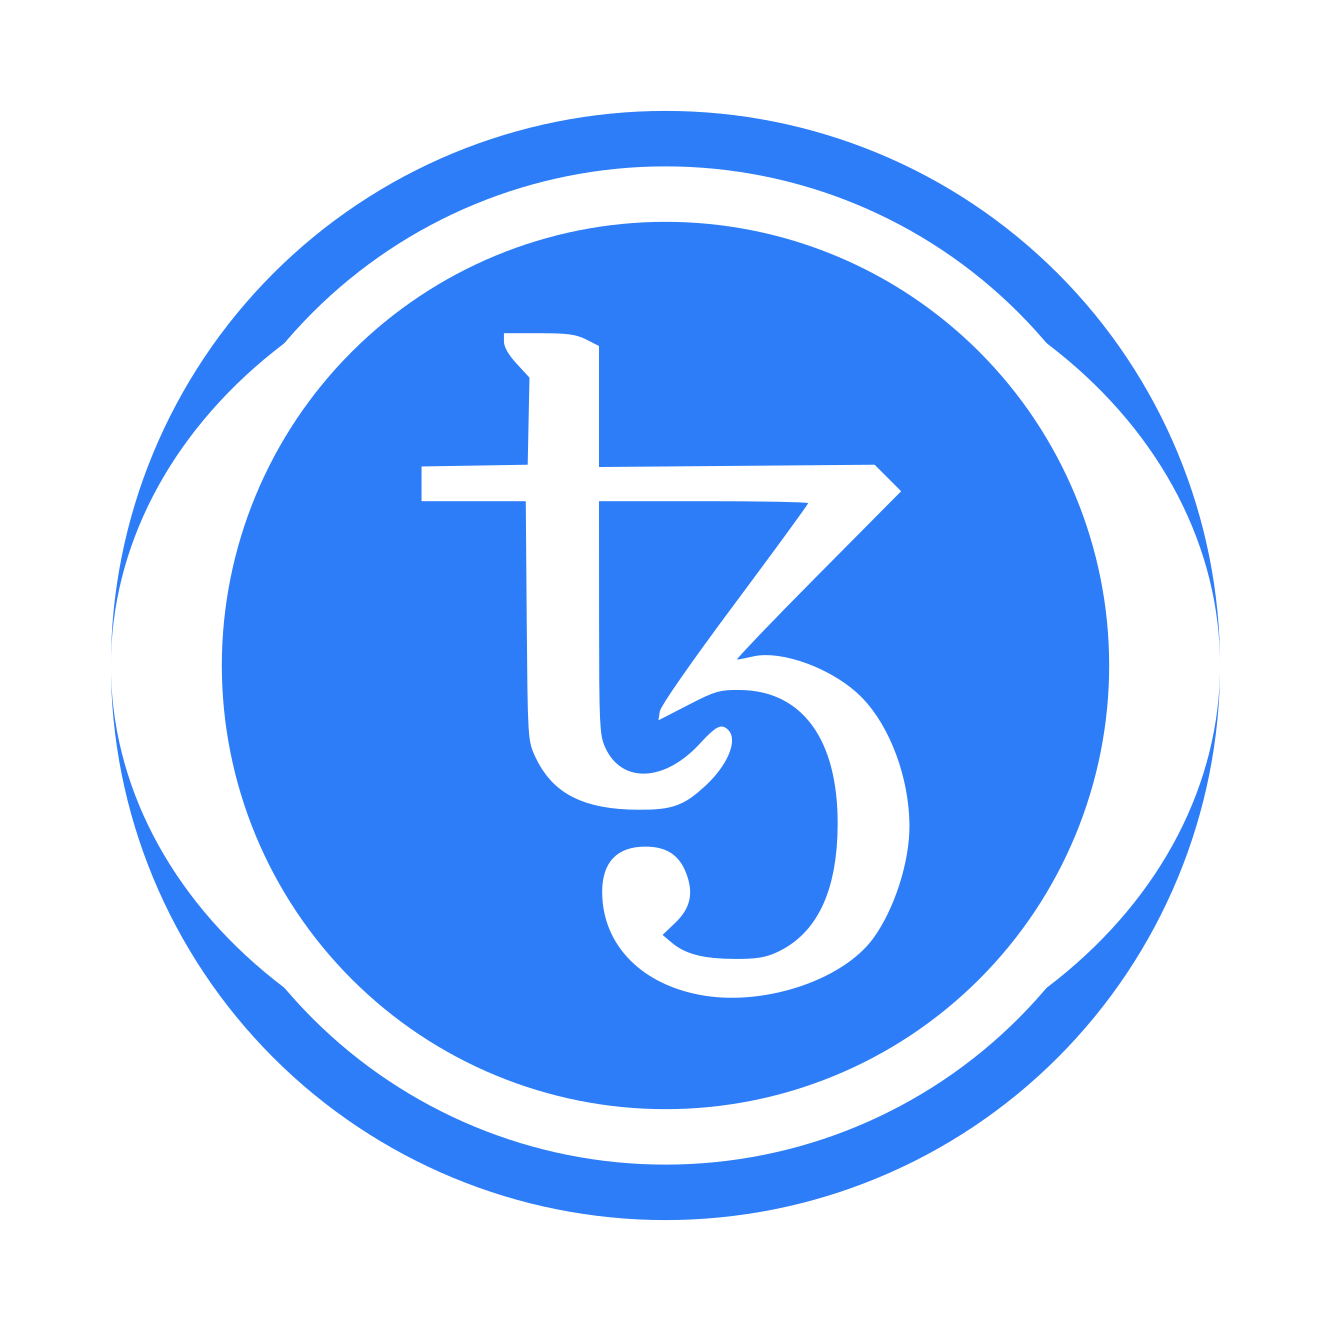 Find Tezos Exchanges easily